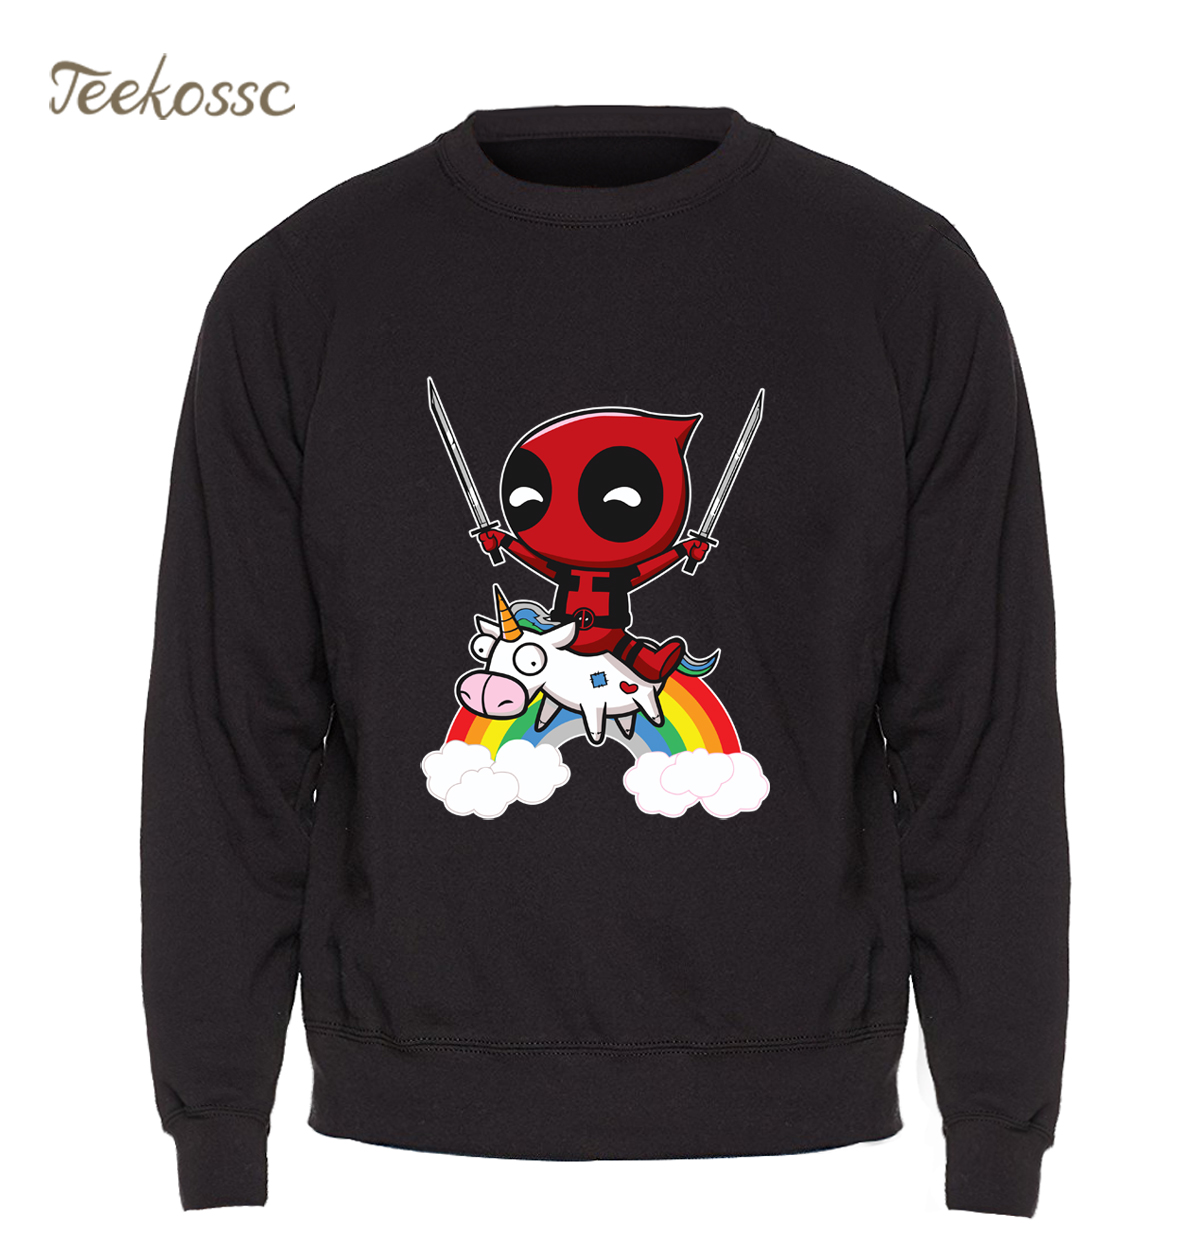 Deadpool Sweatshirt Men Funny Print Hoodie Crewneck Sweatshirts Winter Autumn Black Dead Pool Super Hero Hipster Brand Clothing(China)